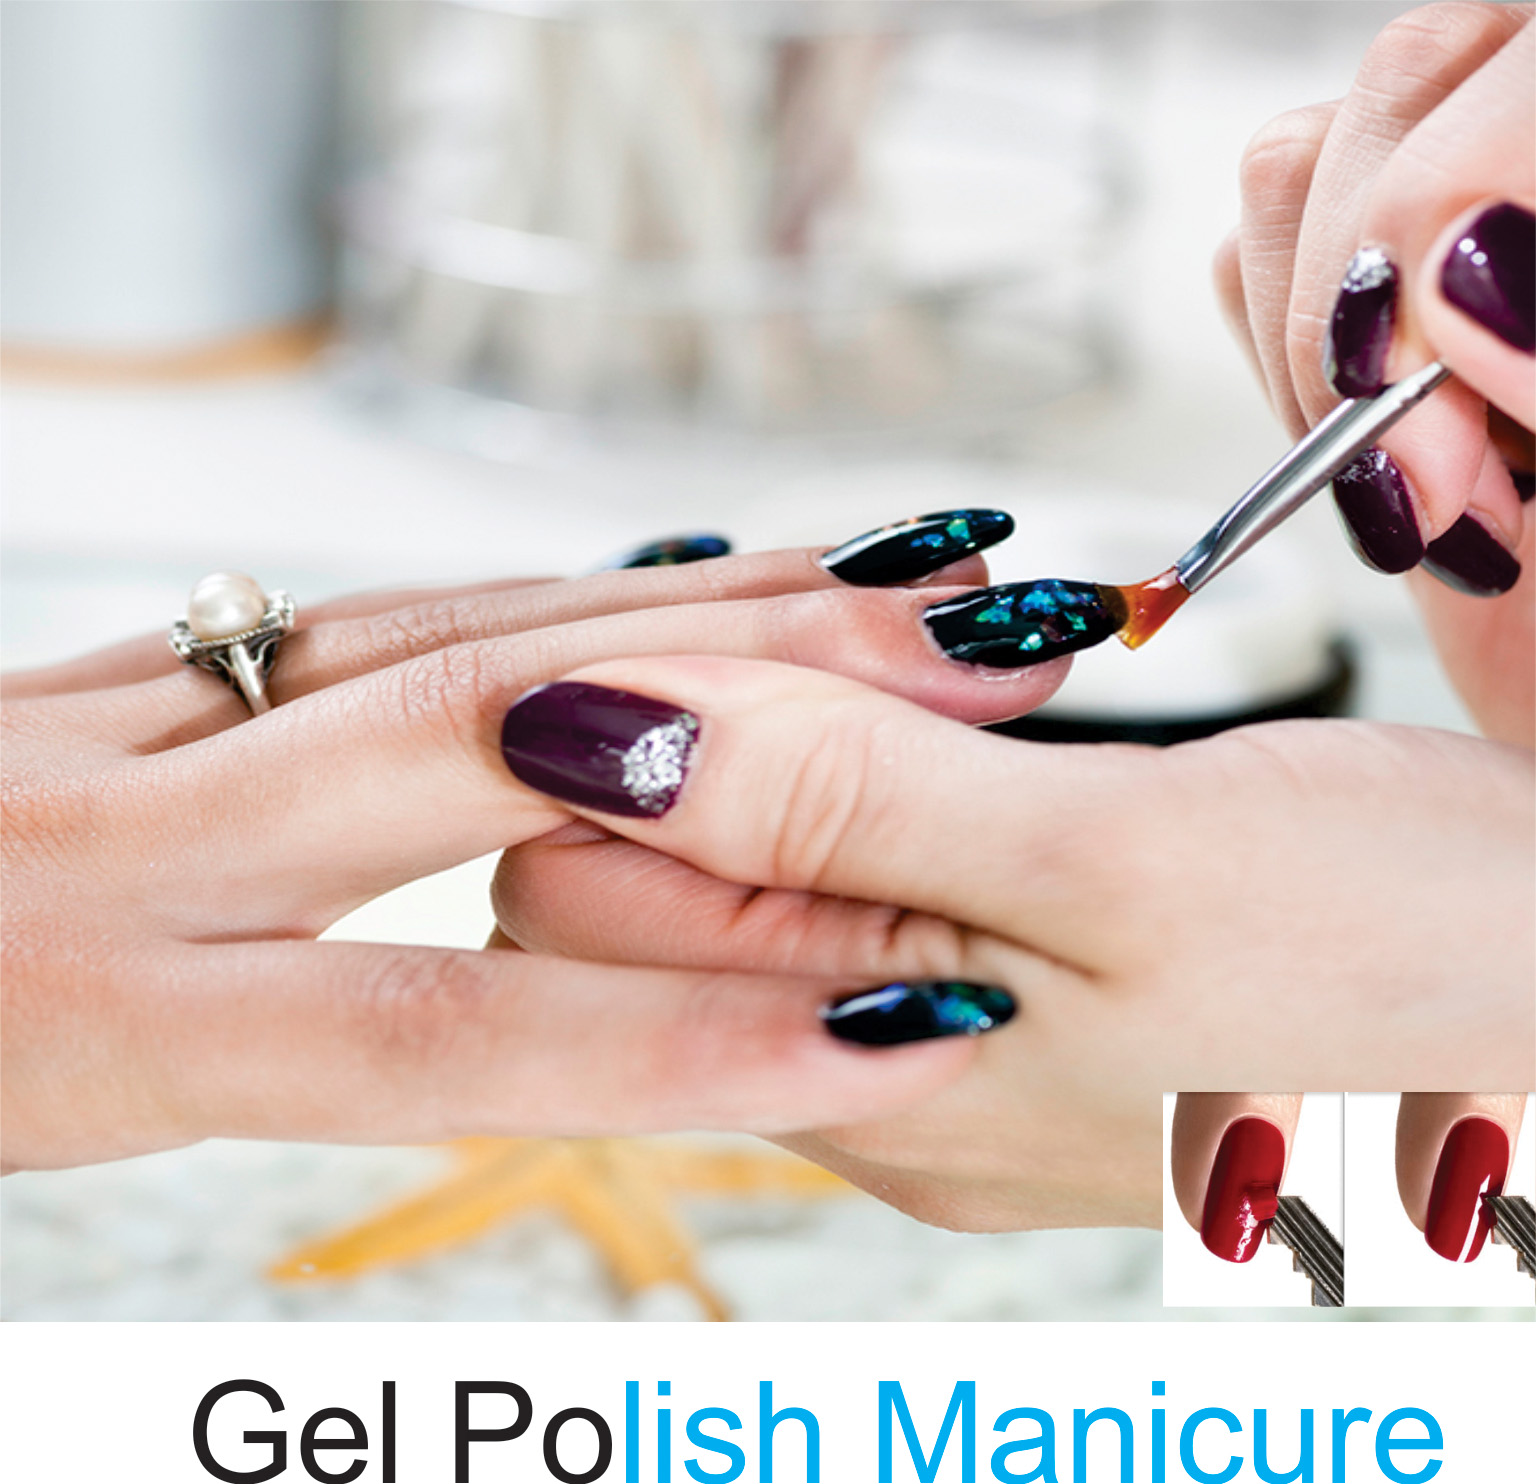 eska group clinic C6114-GelPolishManicure